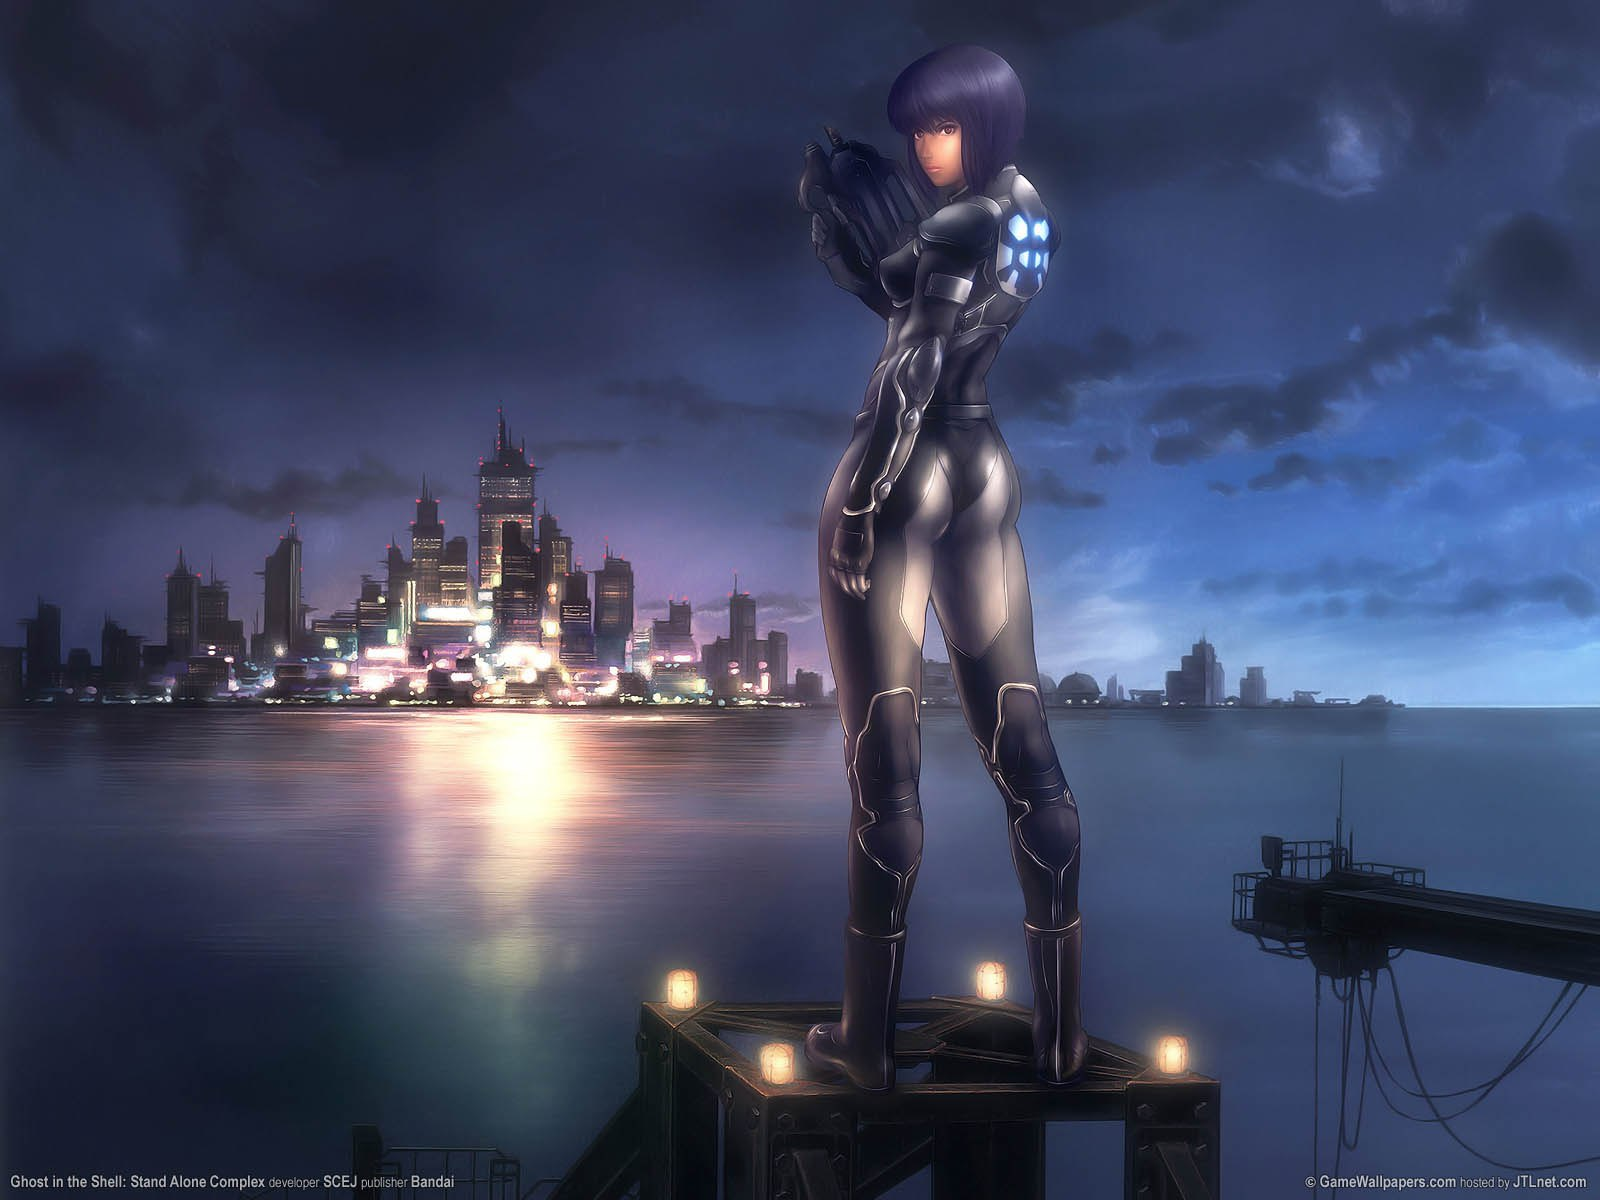 Major Kusanagi looking out over the city in Ghost in the Shell 1995 animatedfilmreviews.blogspot.com